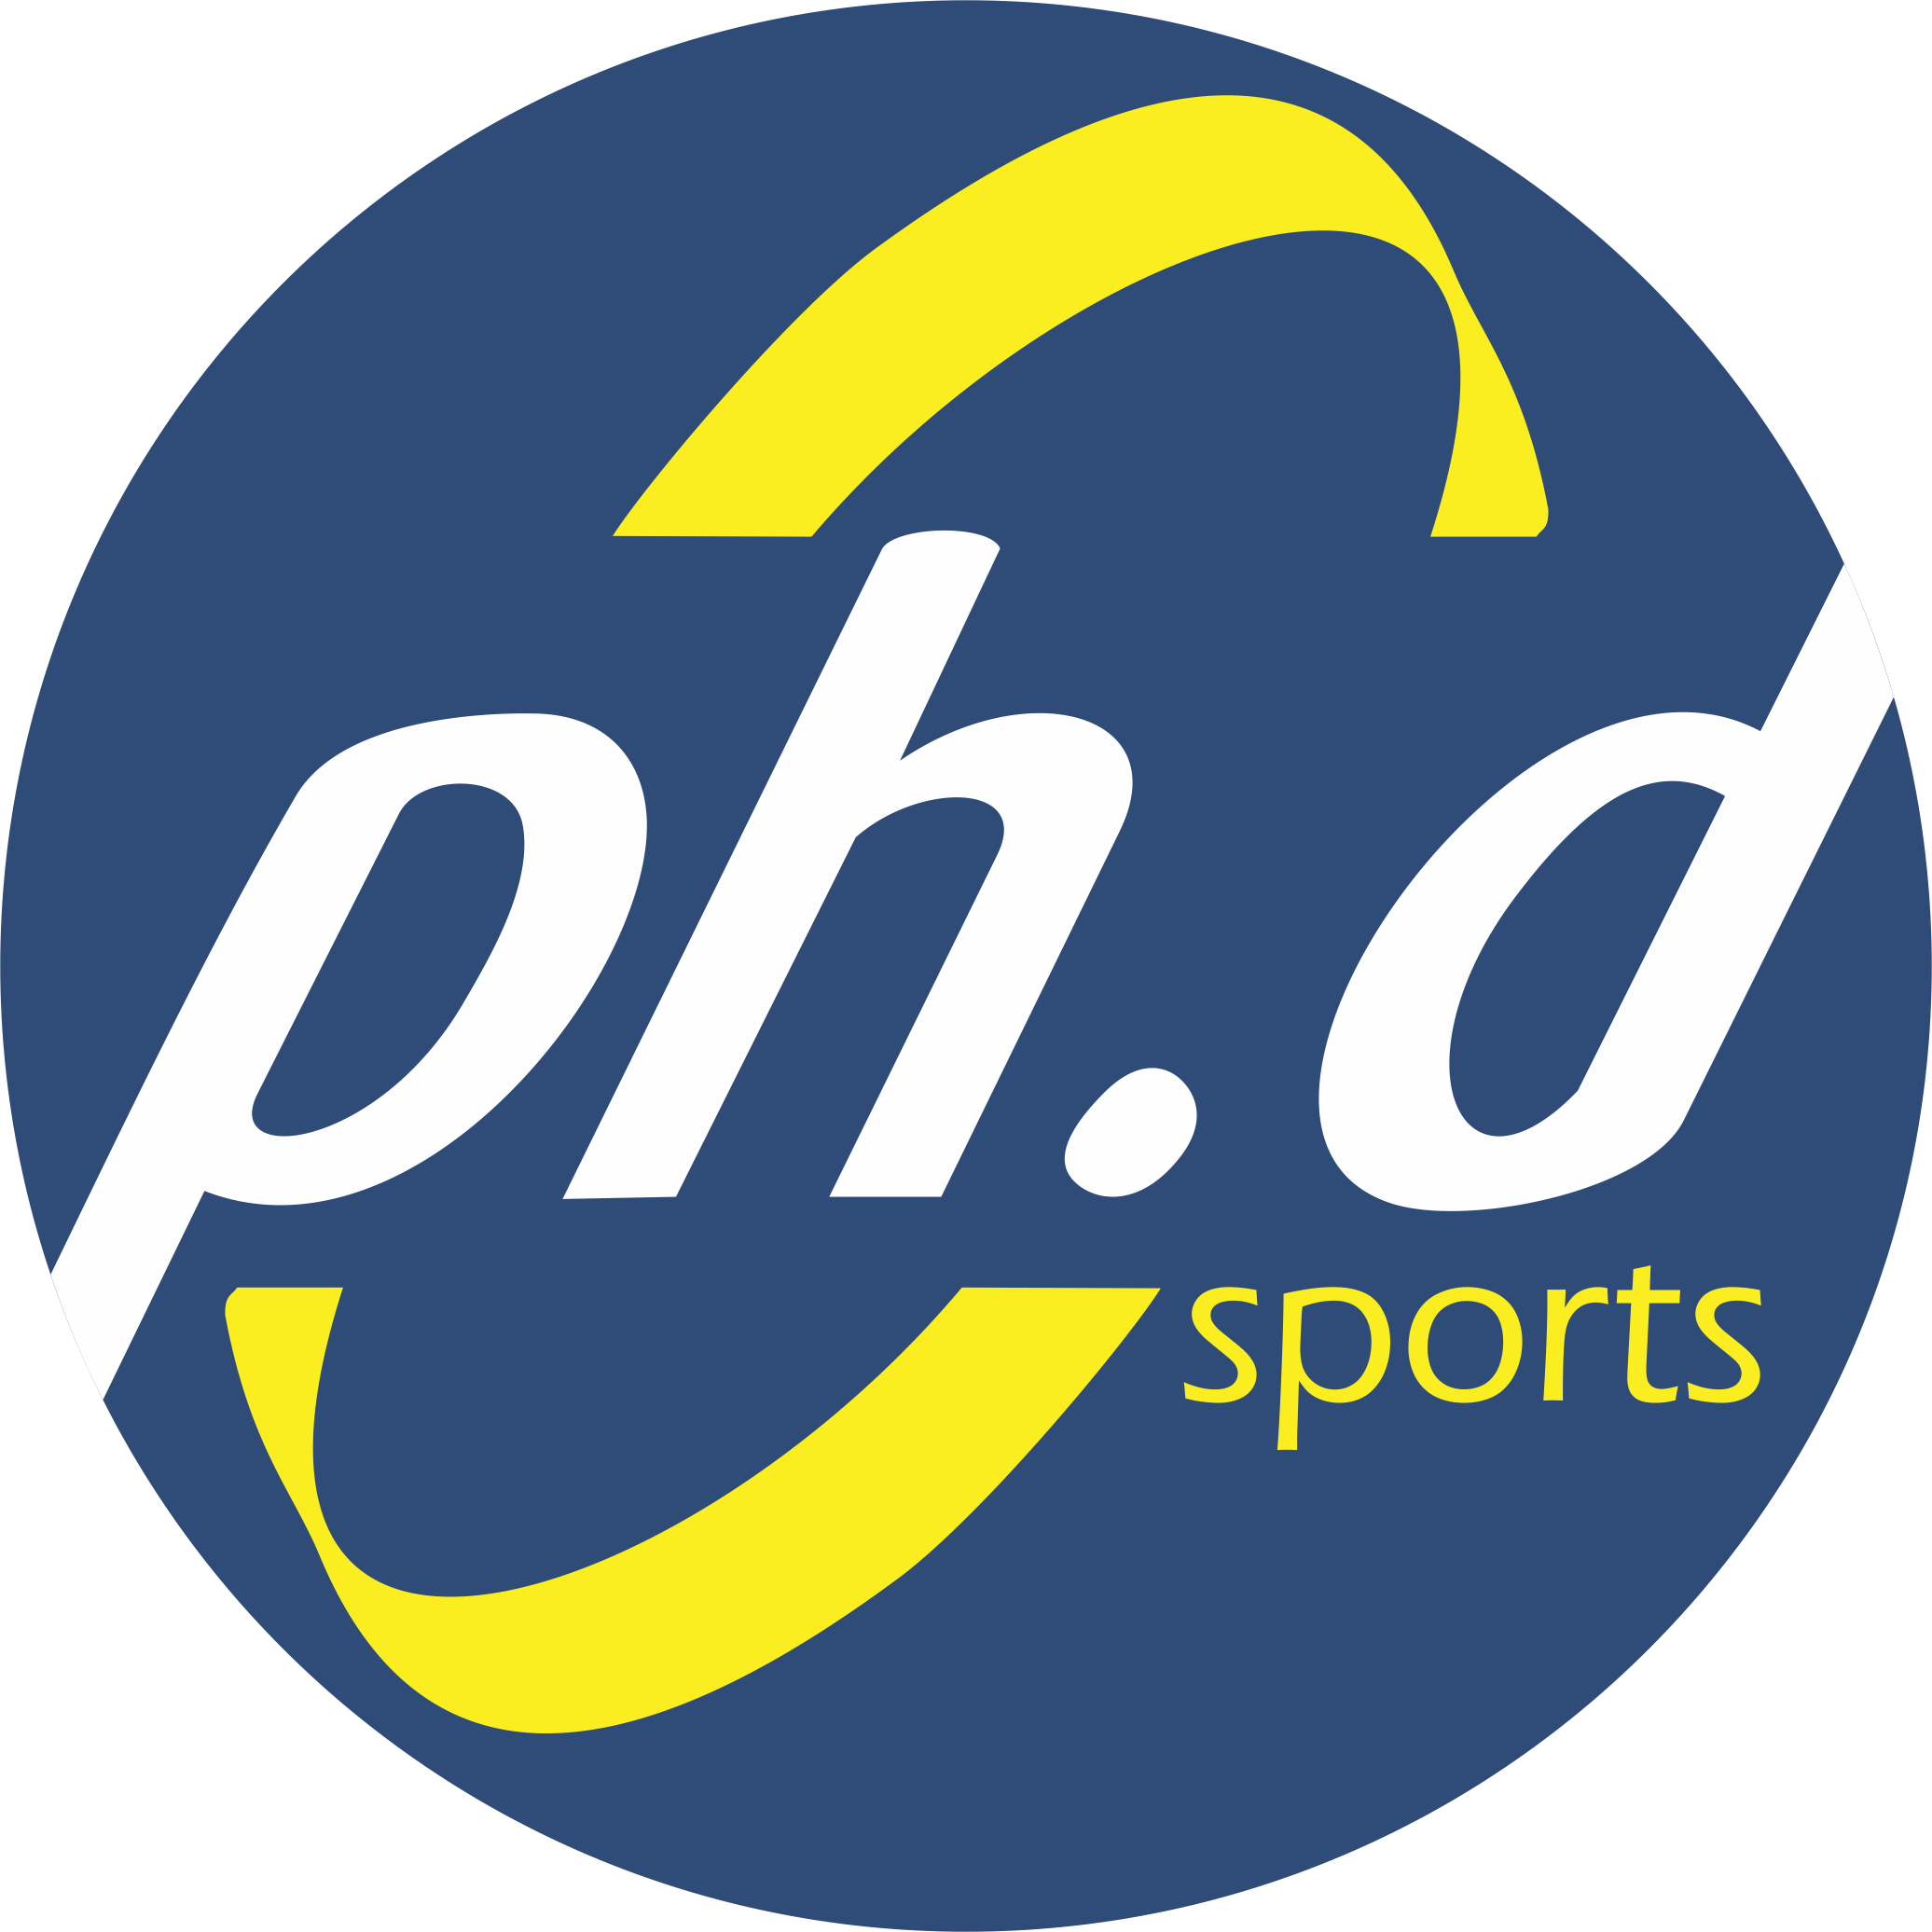 phd ph Shop for phd on etsy, the place to express your creativity through the buying and selling of handmade and vintage goods.